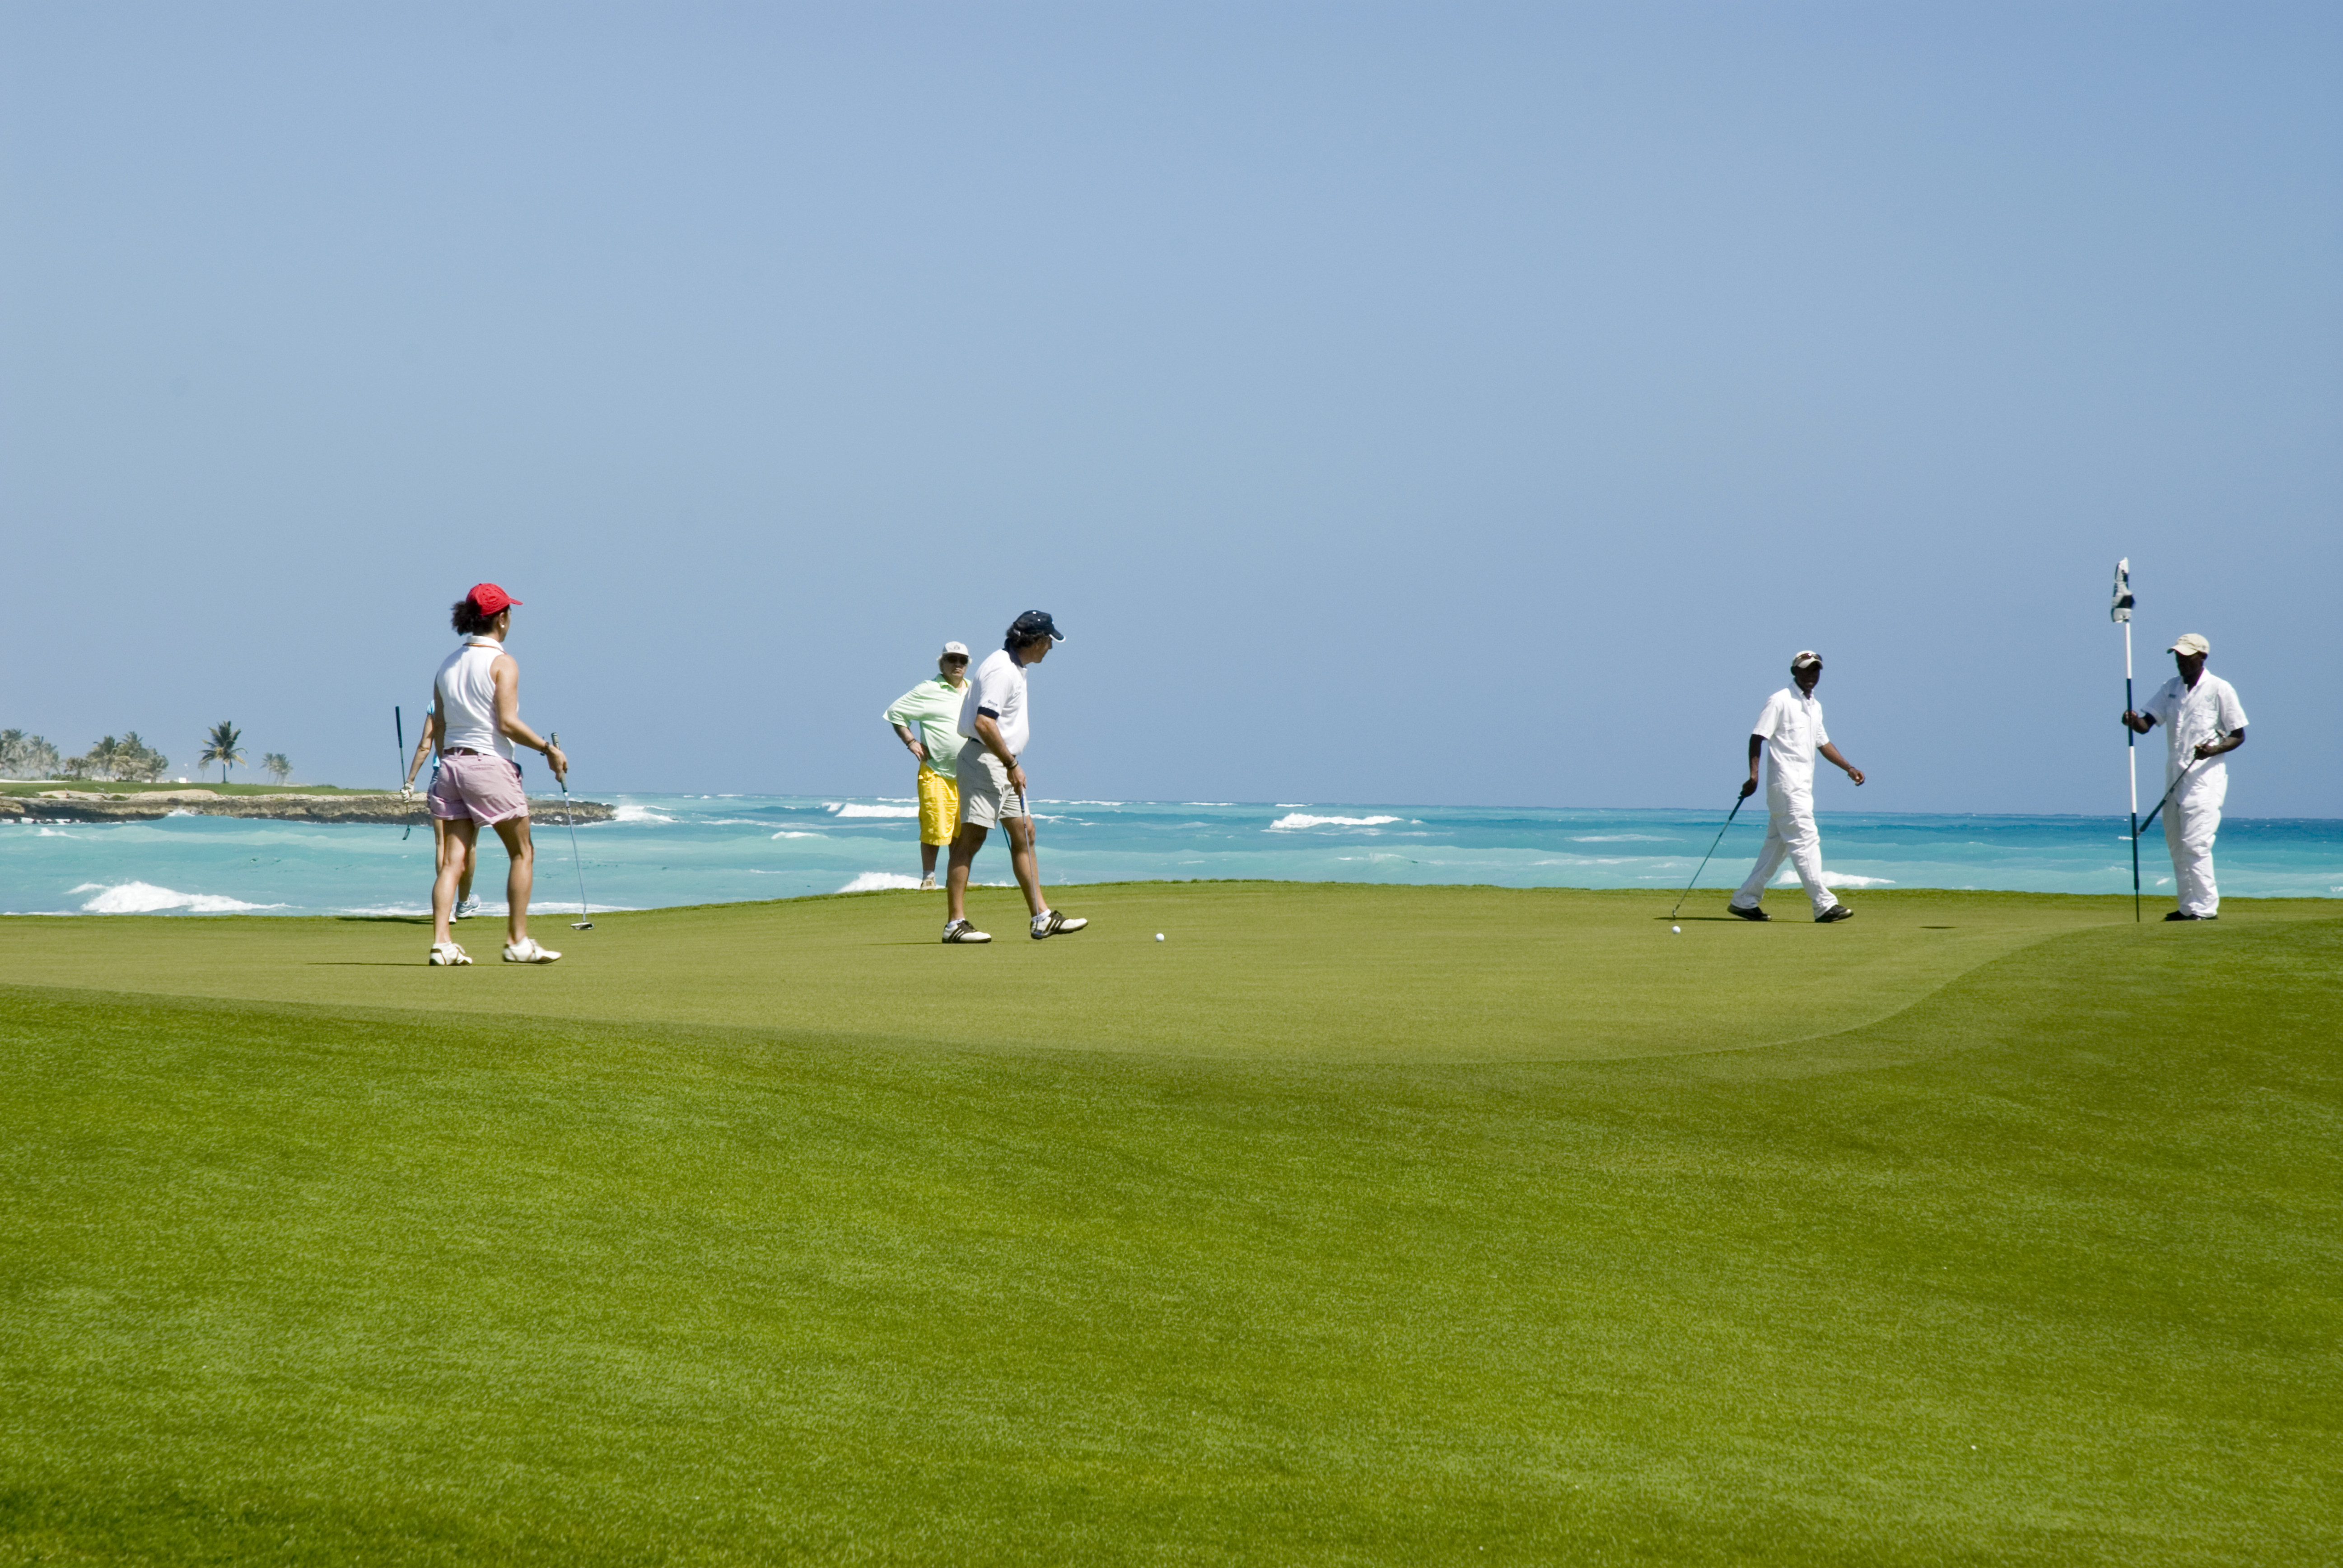 Golfers play a diversion in Punta Cana, Dominican Republic.